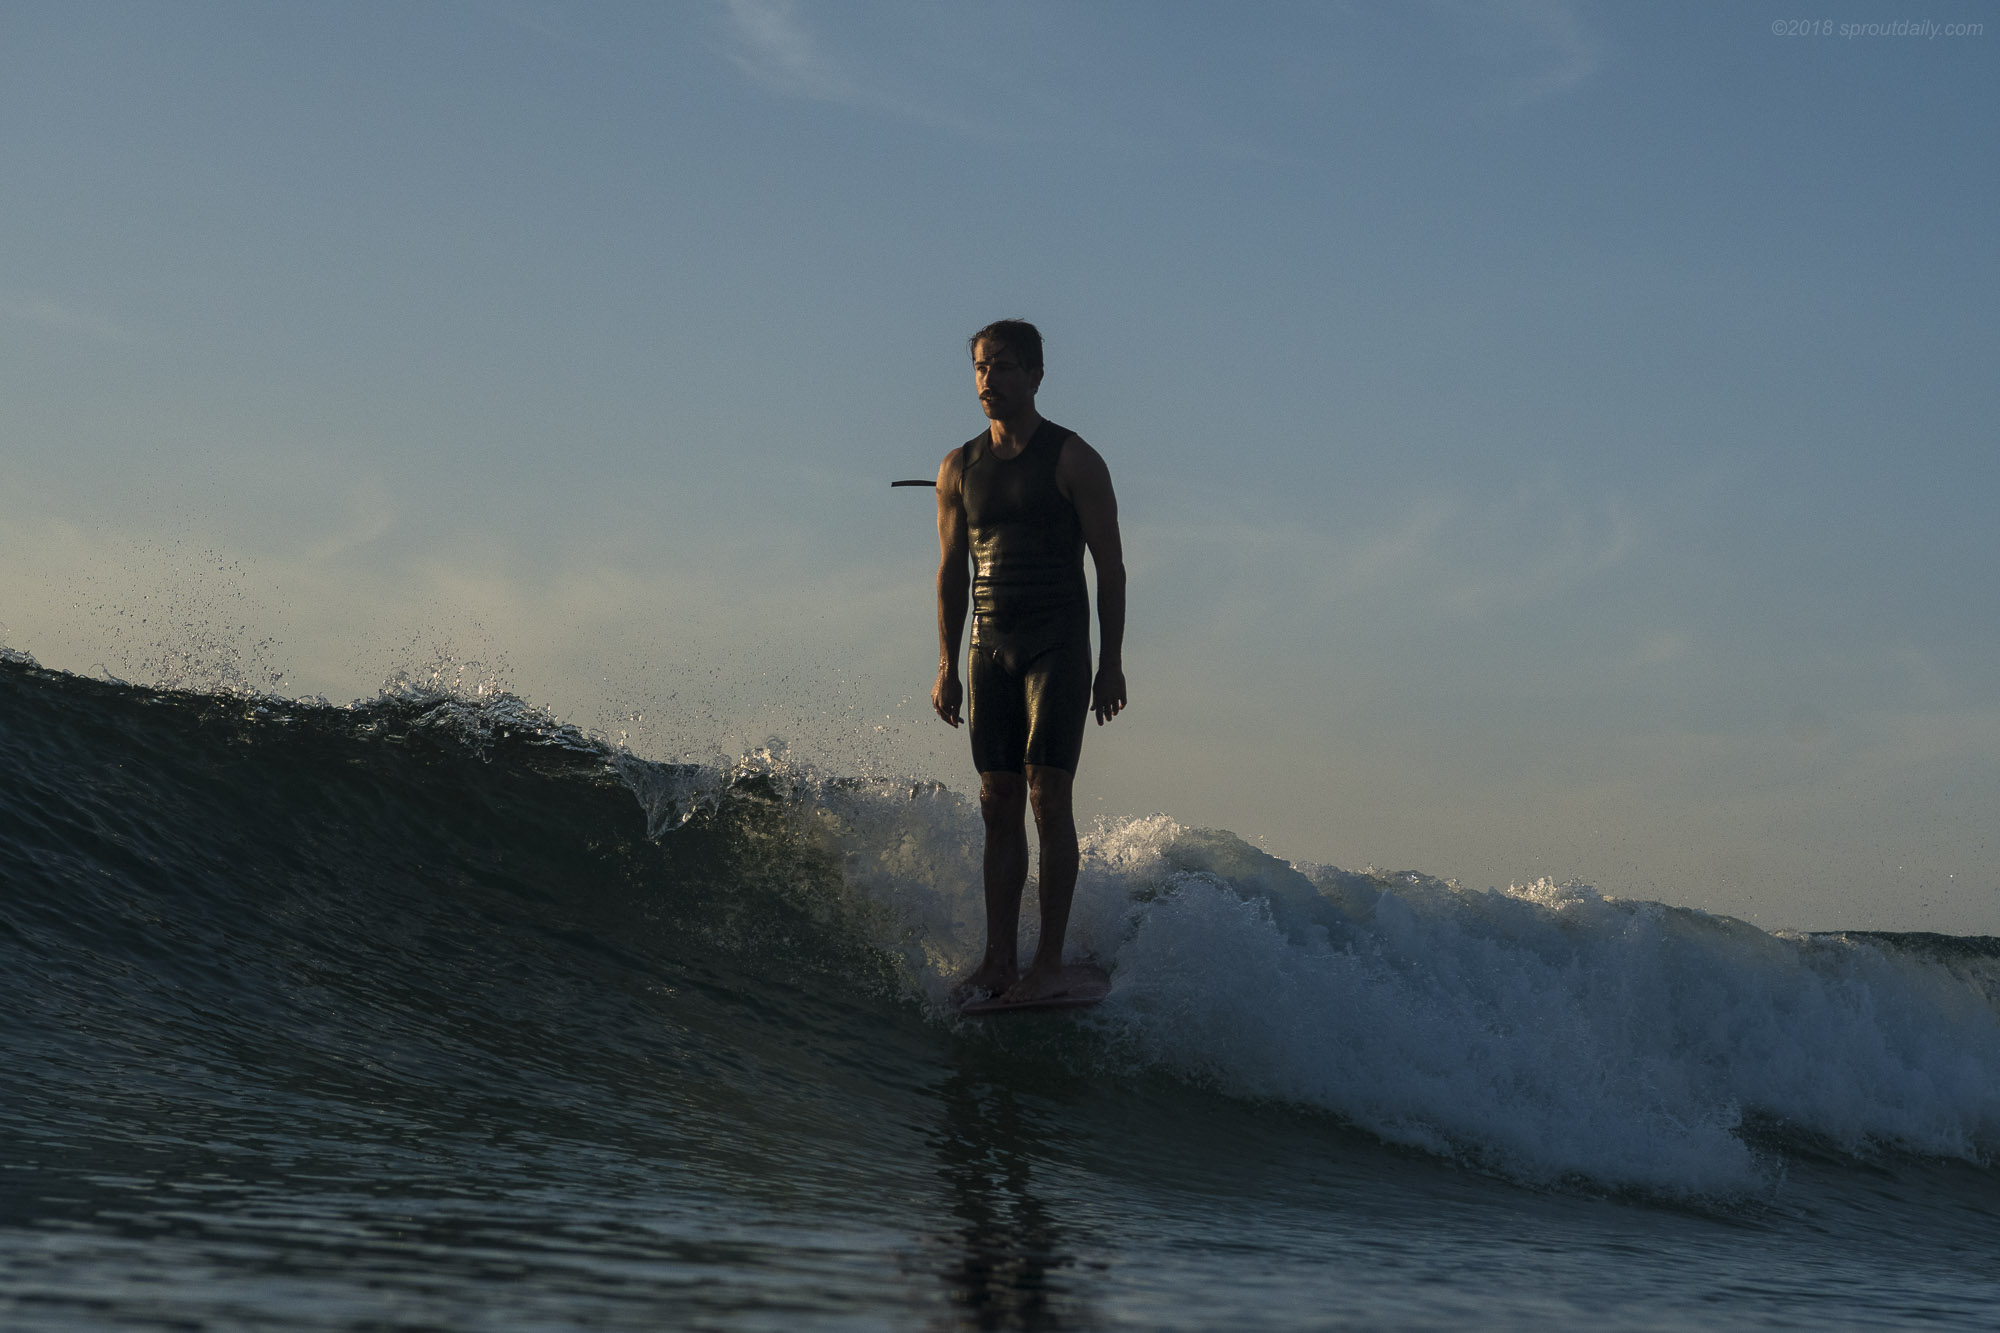 Moody down carve